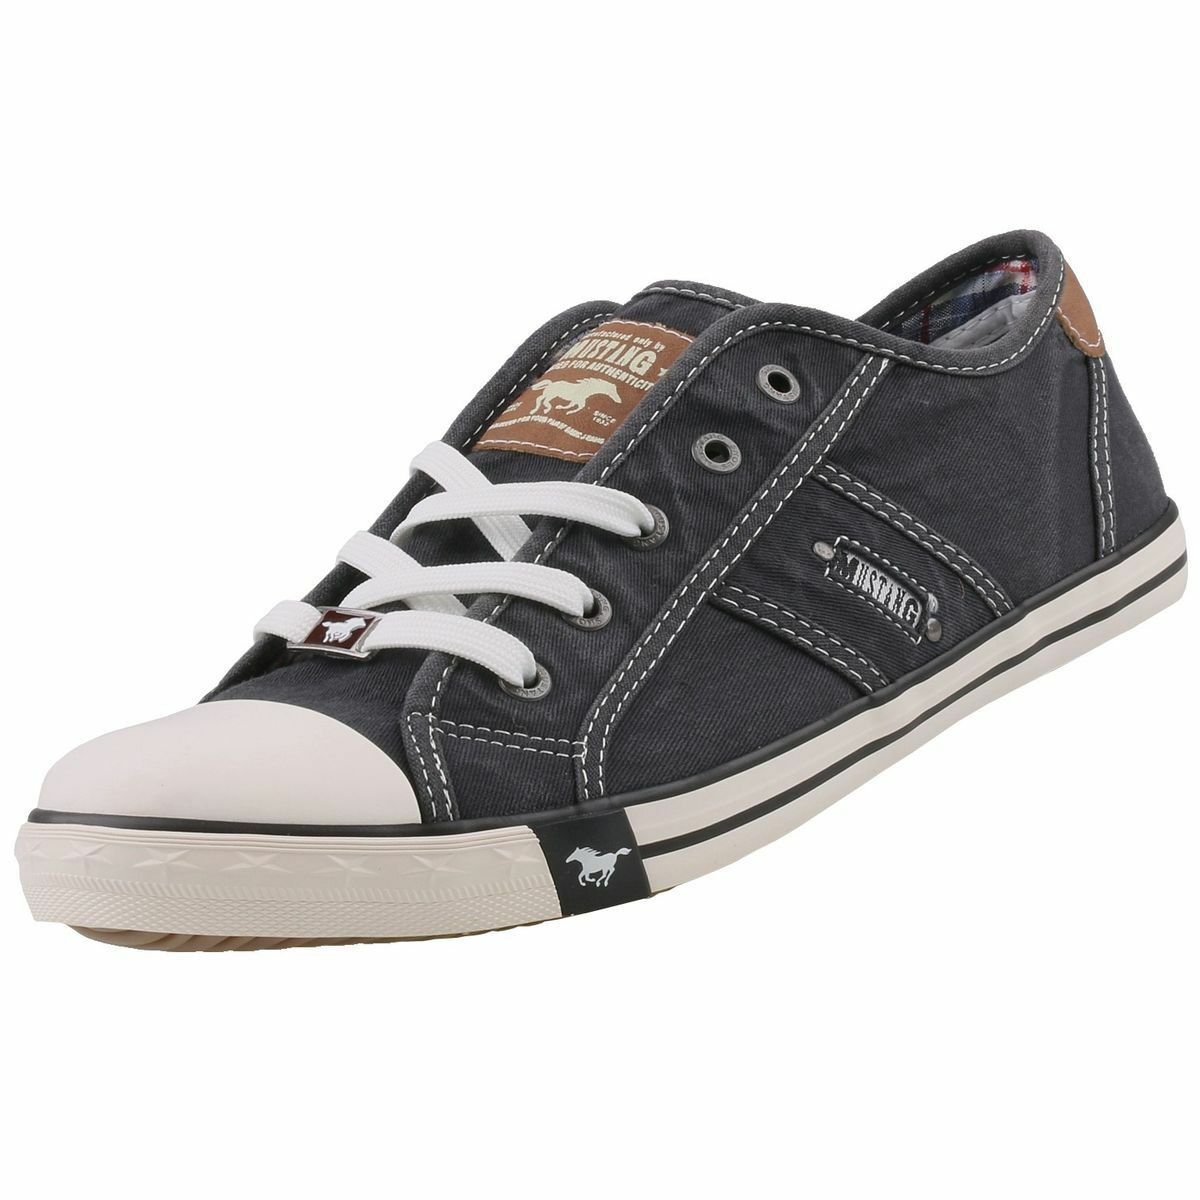 Neuf Mustang chaussures Femme chaussures Baskets